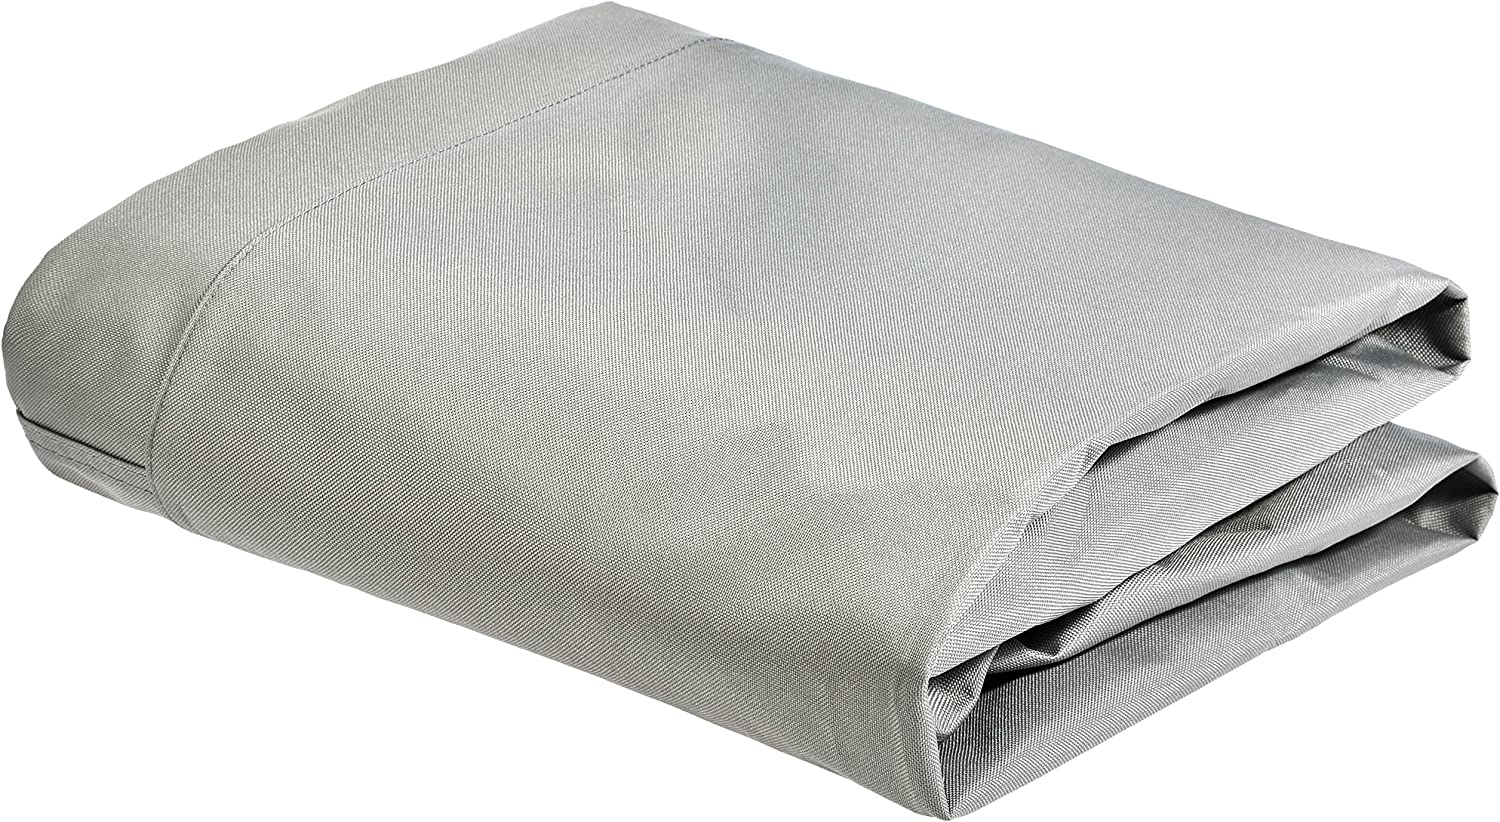 AmazonBasics Outdoor Patio Stackable Chair Cover – Waterproof, 100 Woven Polyester – Grey